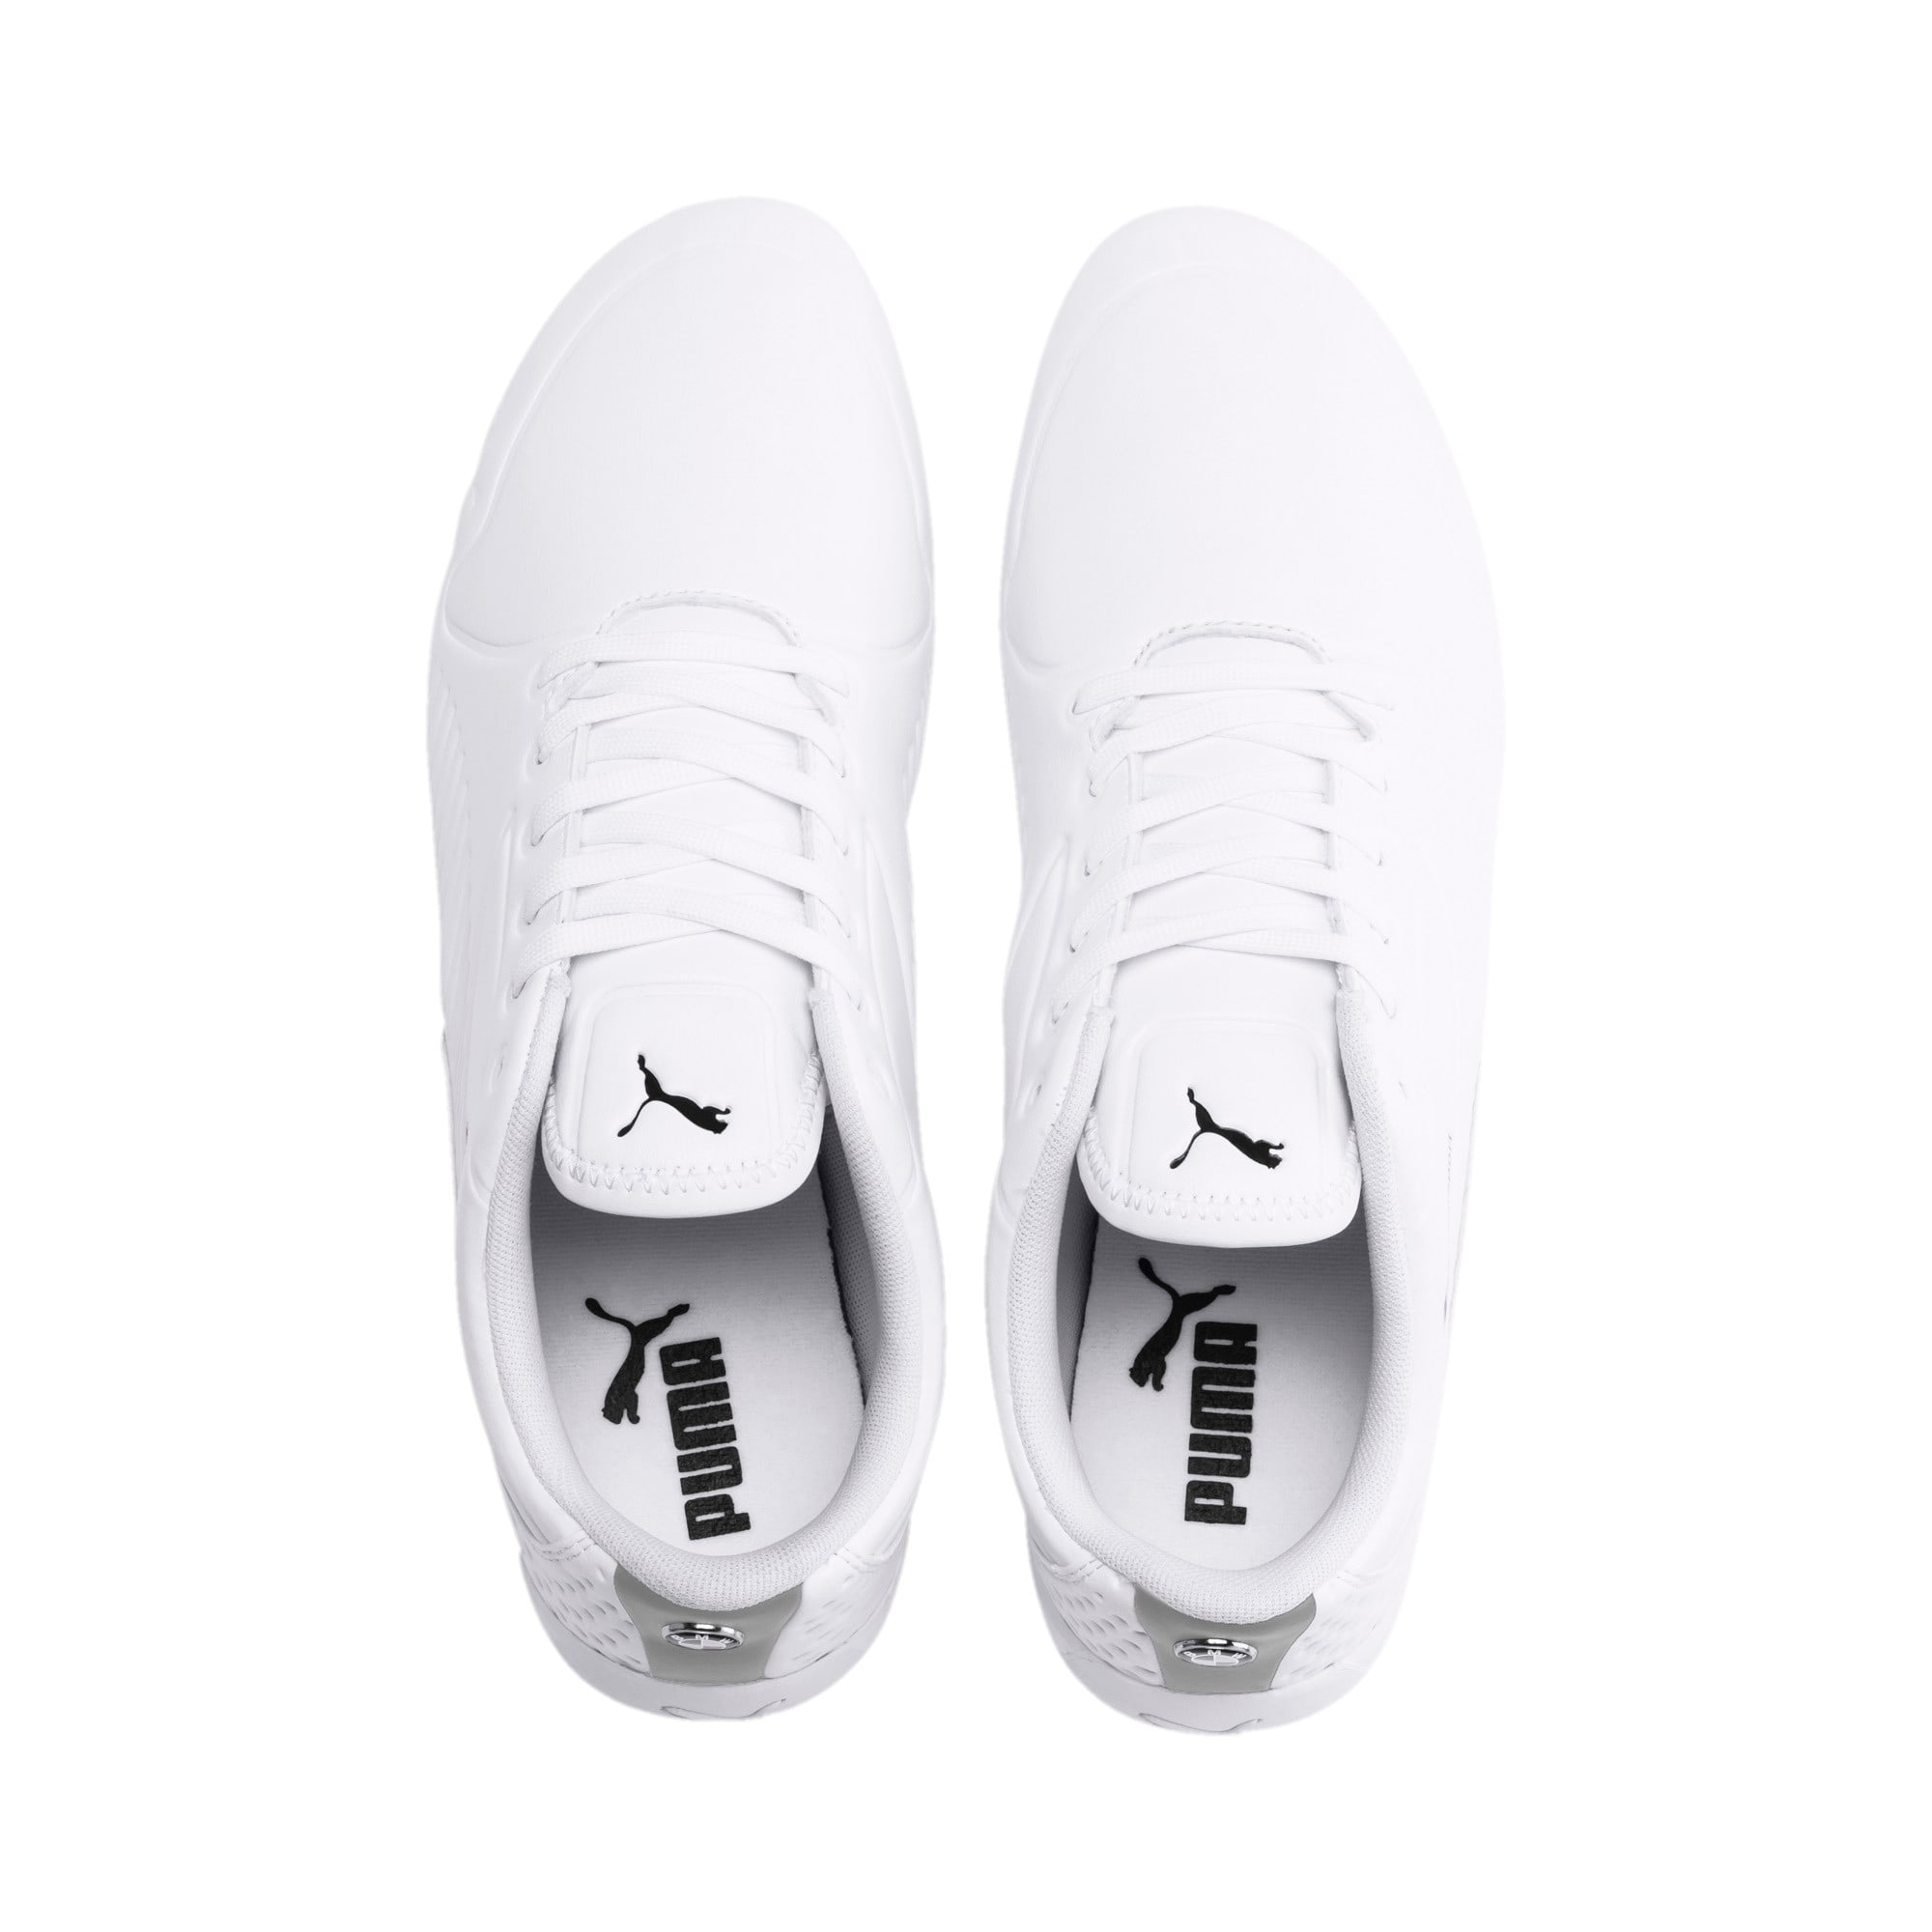 Thumbnail 7 of BMW M Motorsport Drift Cat 7S Ultra Shoes, Puma White-Puma Black, medium